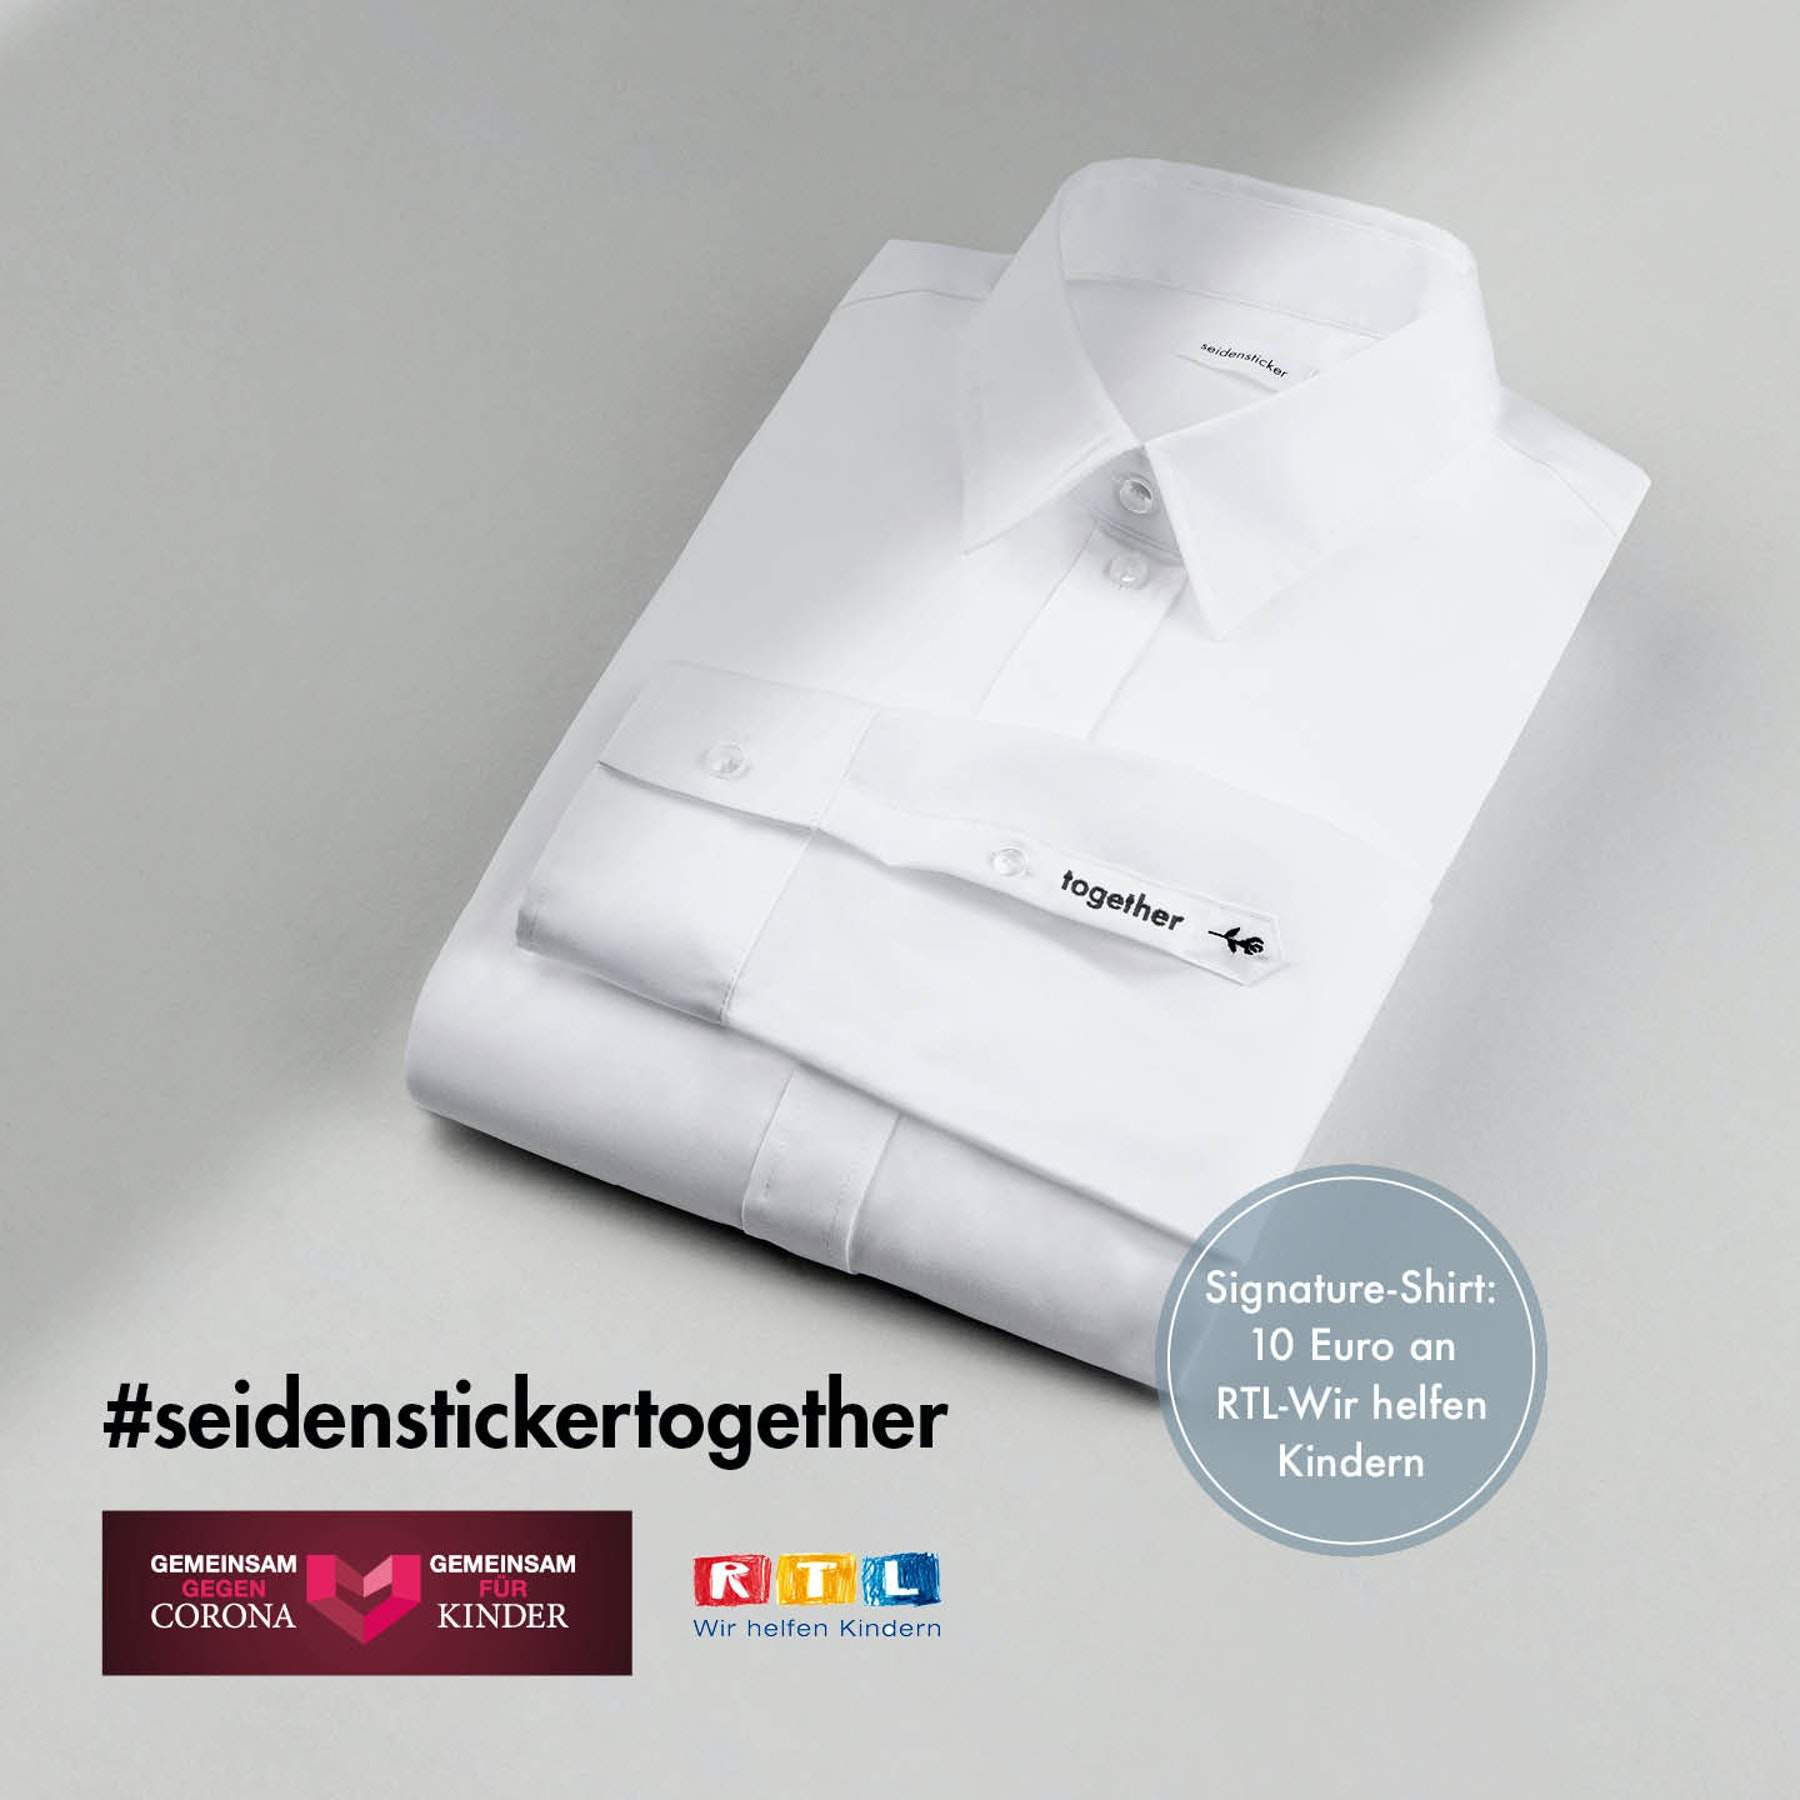 #seidenstickertogether | Seidensticker